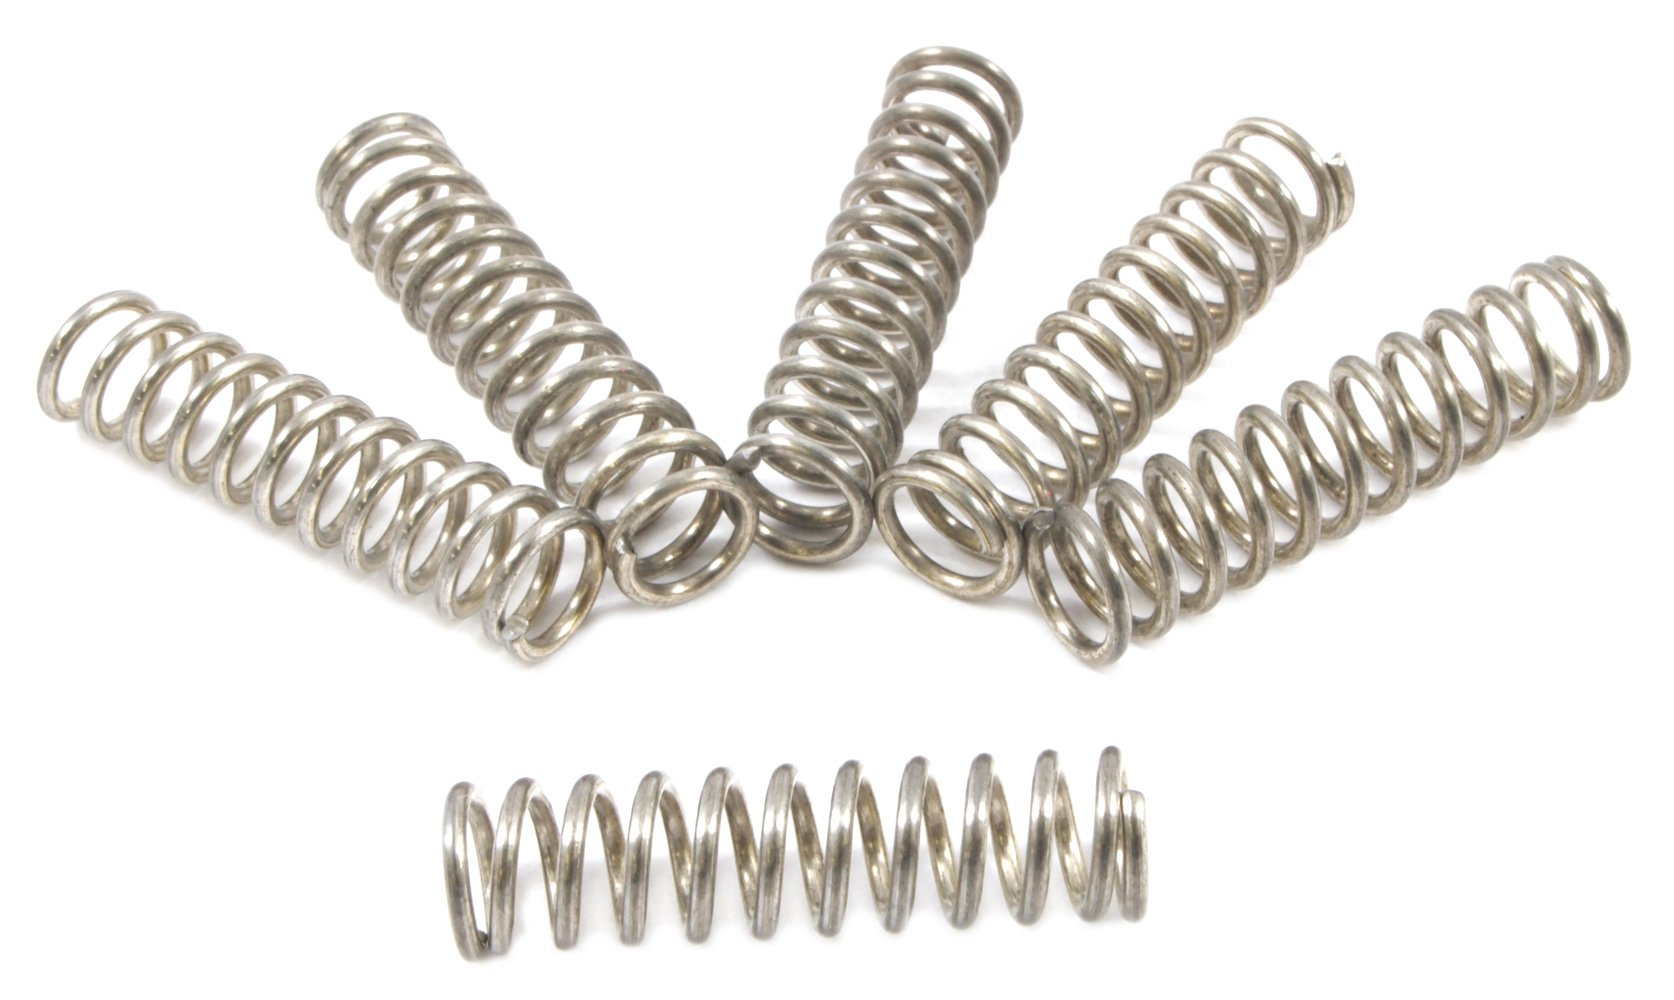 Forney 72610 Wire Spring Compression, 1/4-Inch-by-1-Inch-by-.035-Inch, 6-Pack